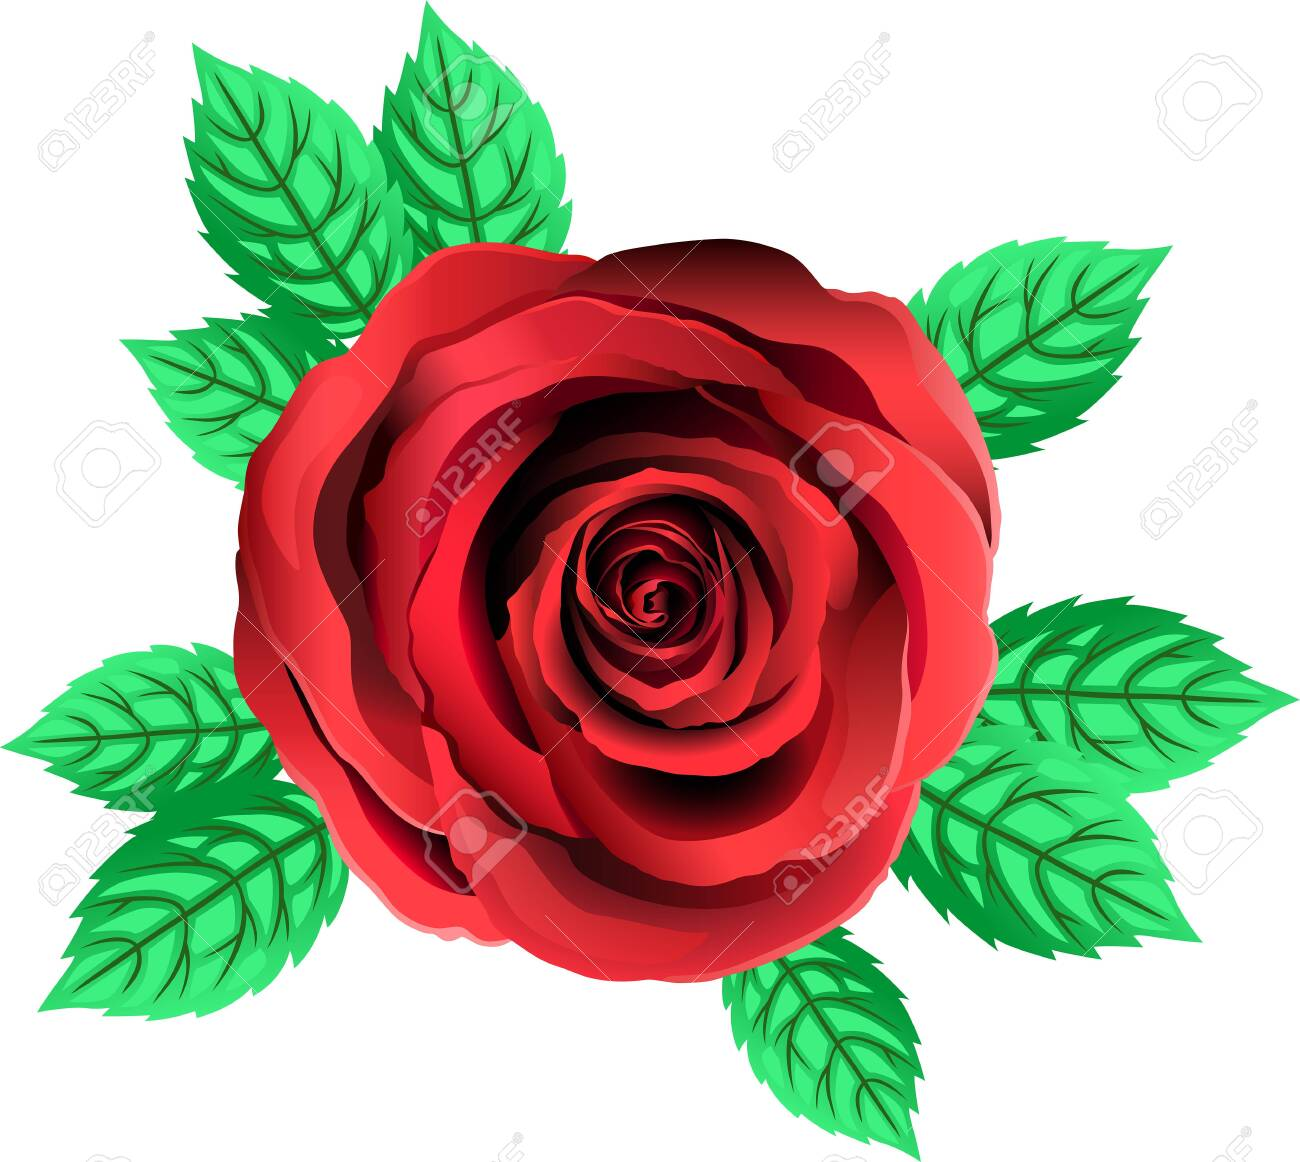 Vector Red Rose Flower Rose Clipart With Petals And Leaf